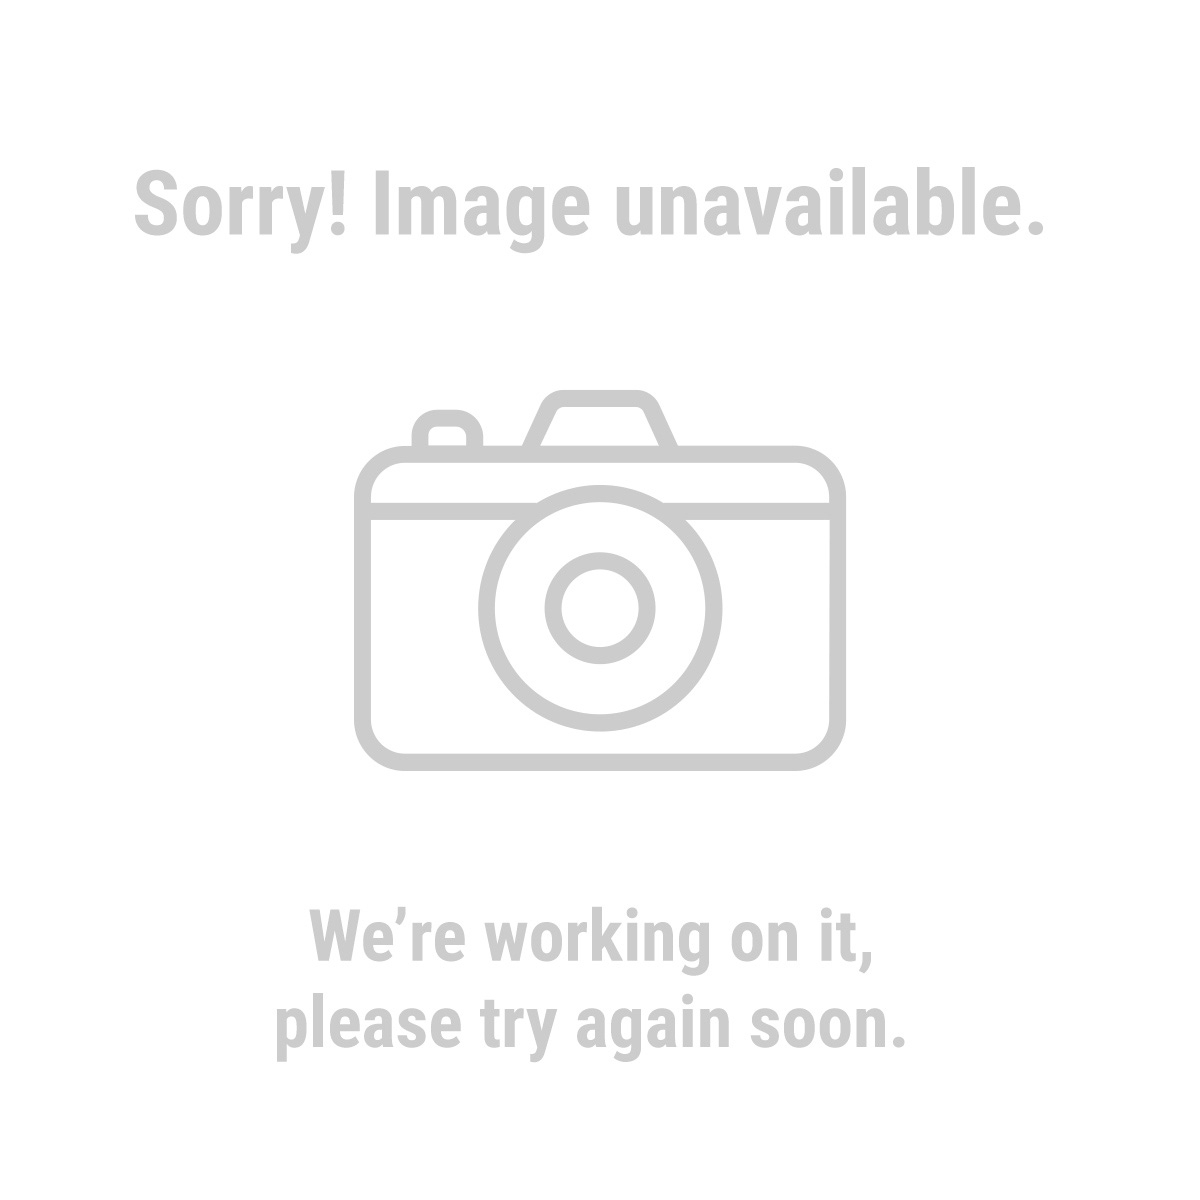 Pittsburgh 9498 3 Piece Slip Joint Pliers Set